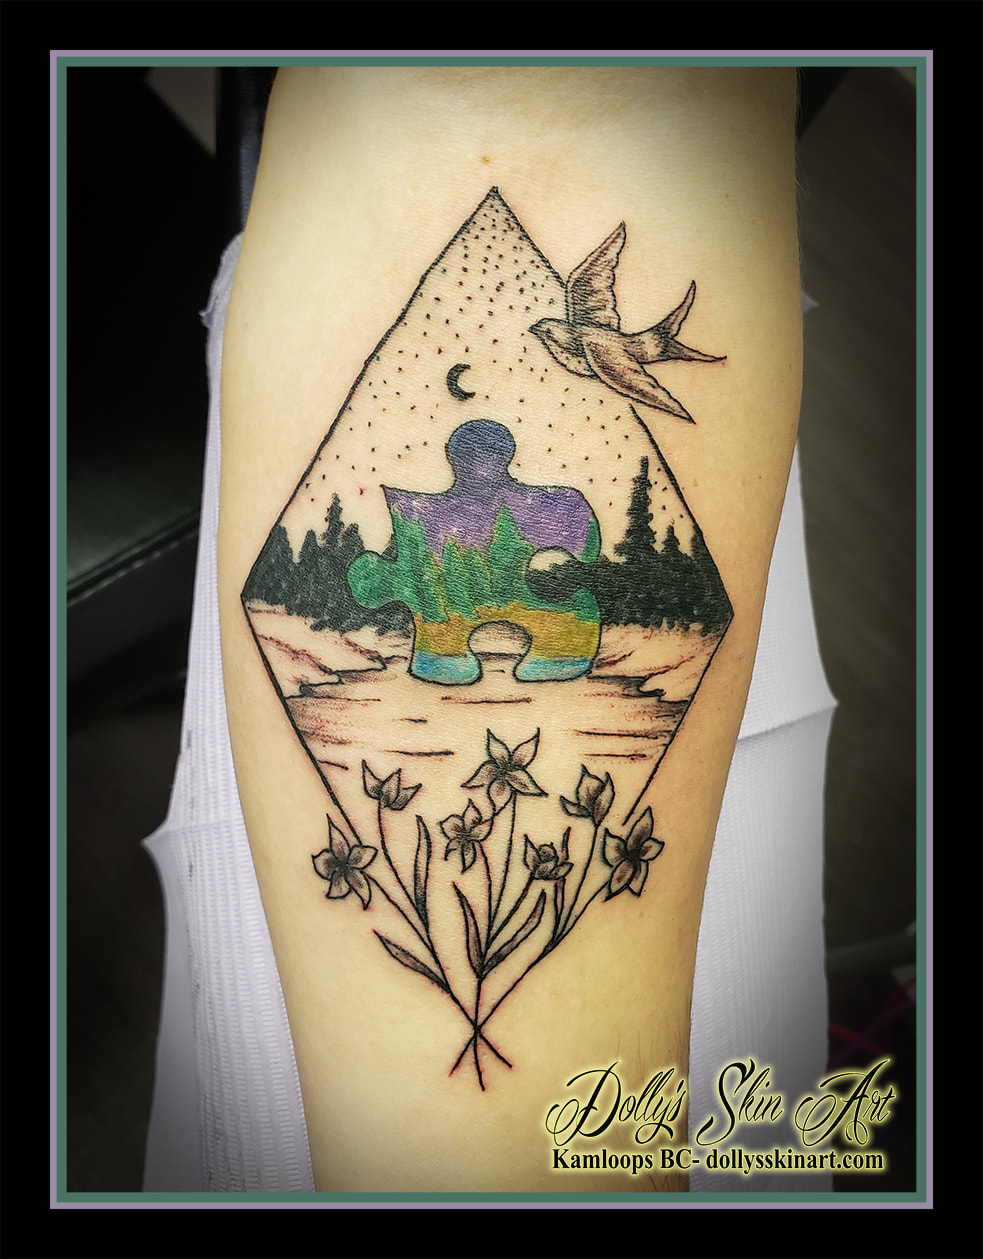 puzzle tattoo family forest trees flowers diamond linework black and grey colour purple green brown blue shading tattoo kamloops dolly's skin art